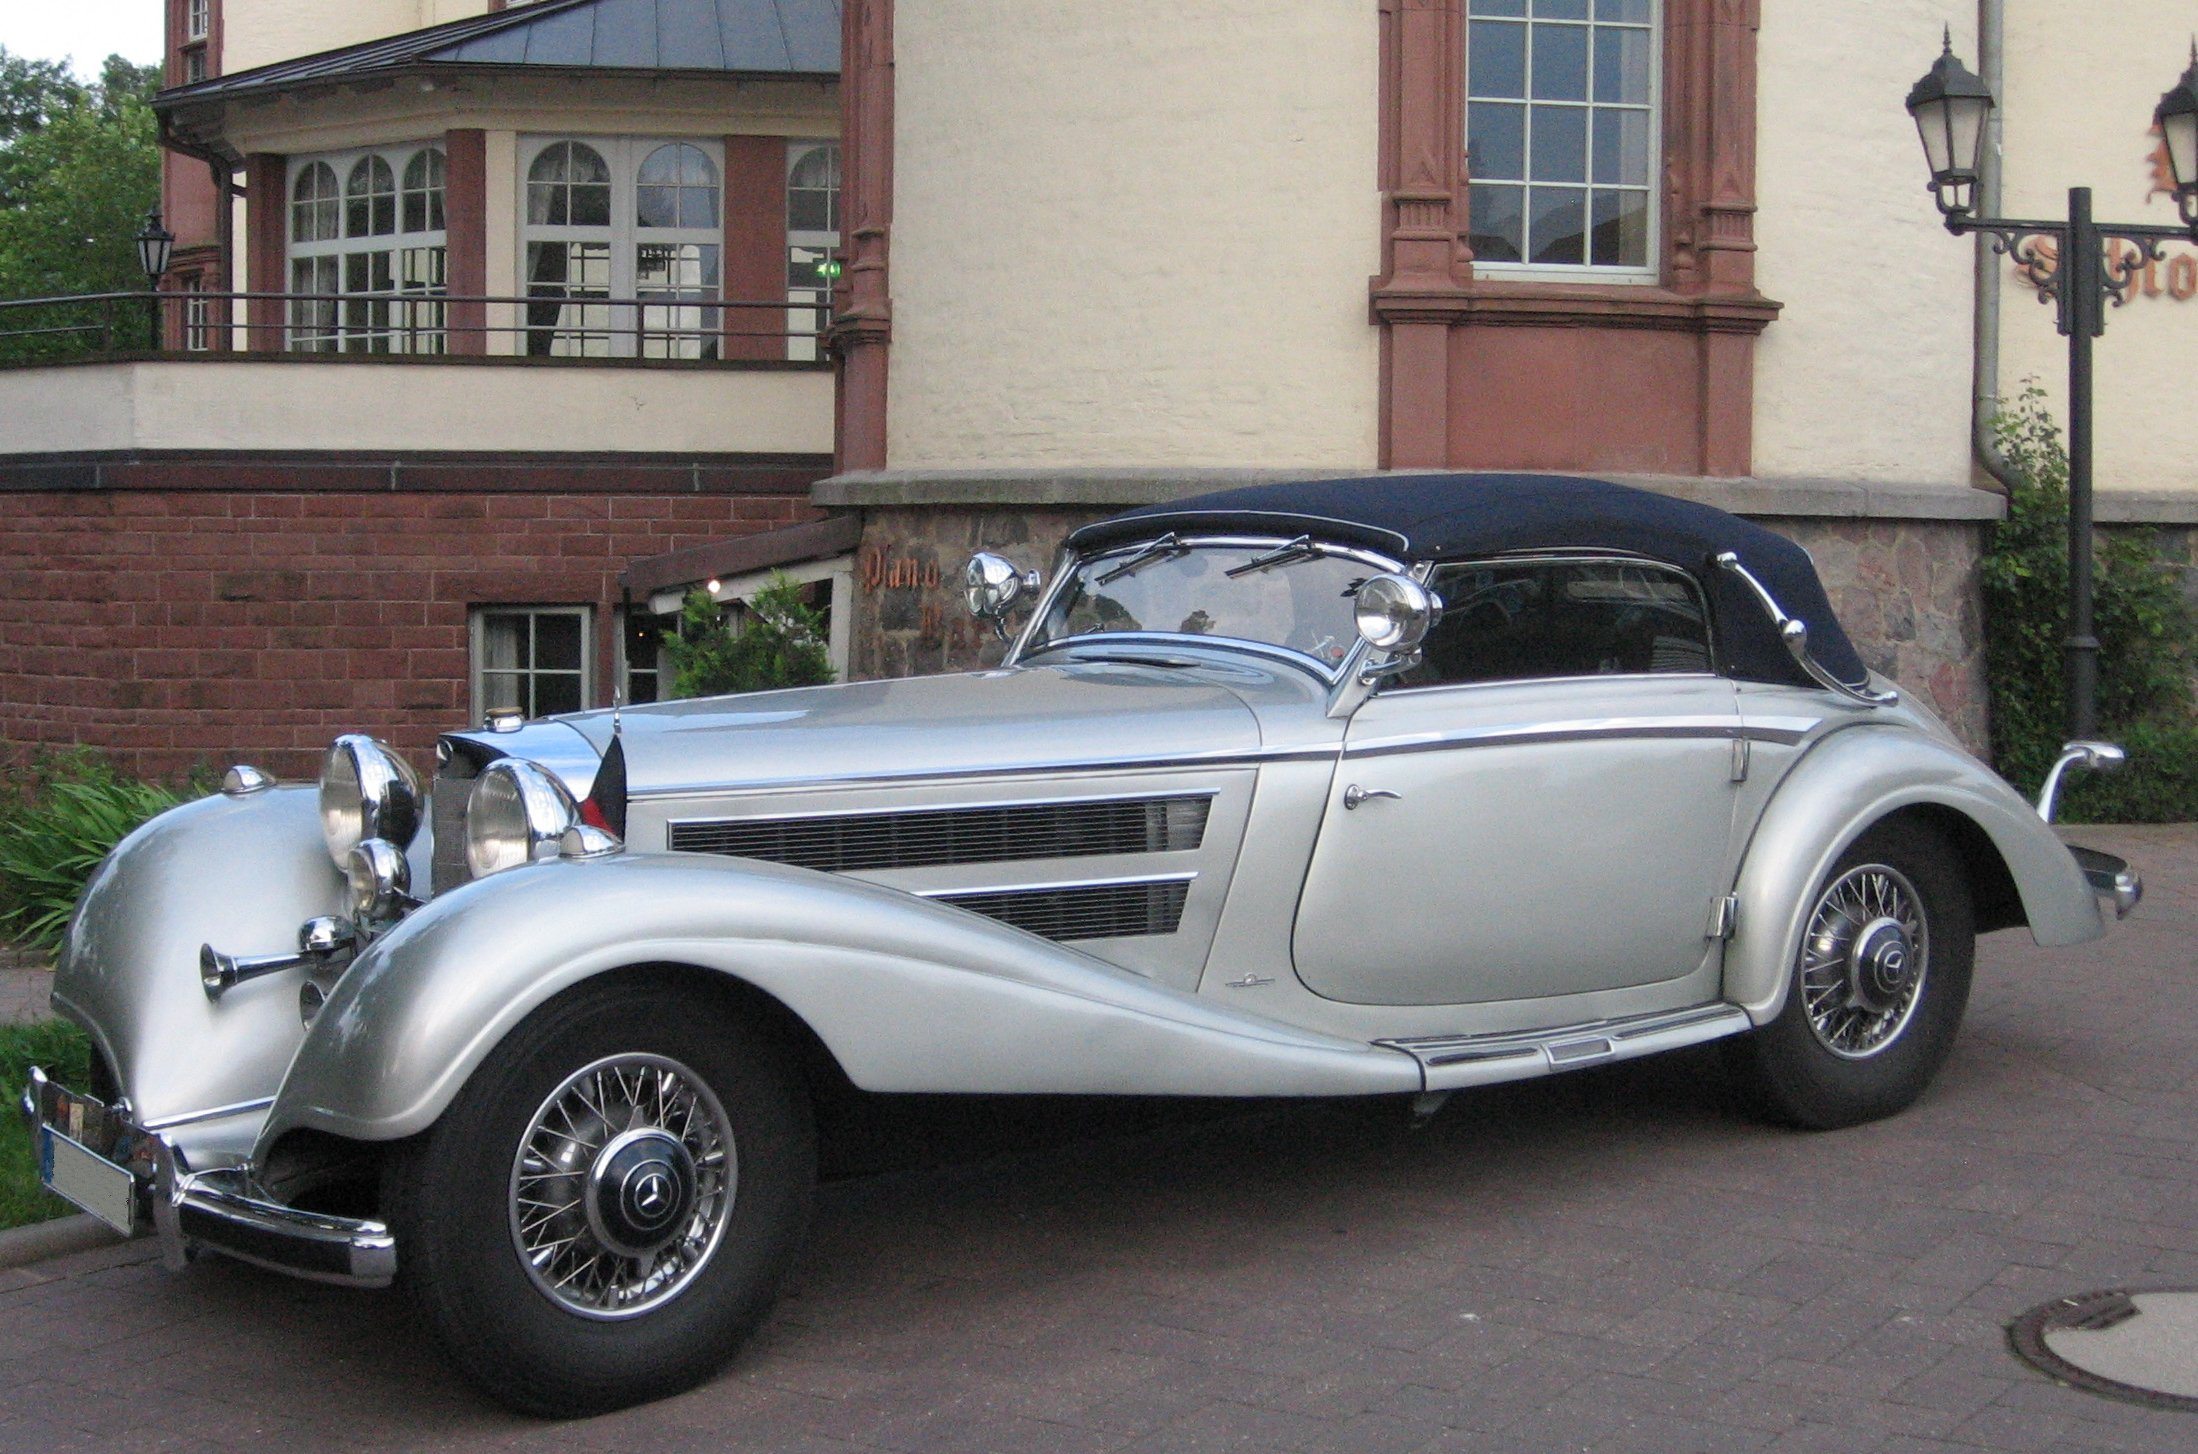 mercedes-benz 500k - wikipedia